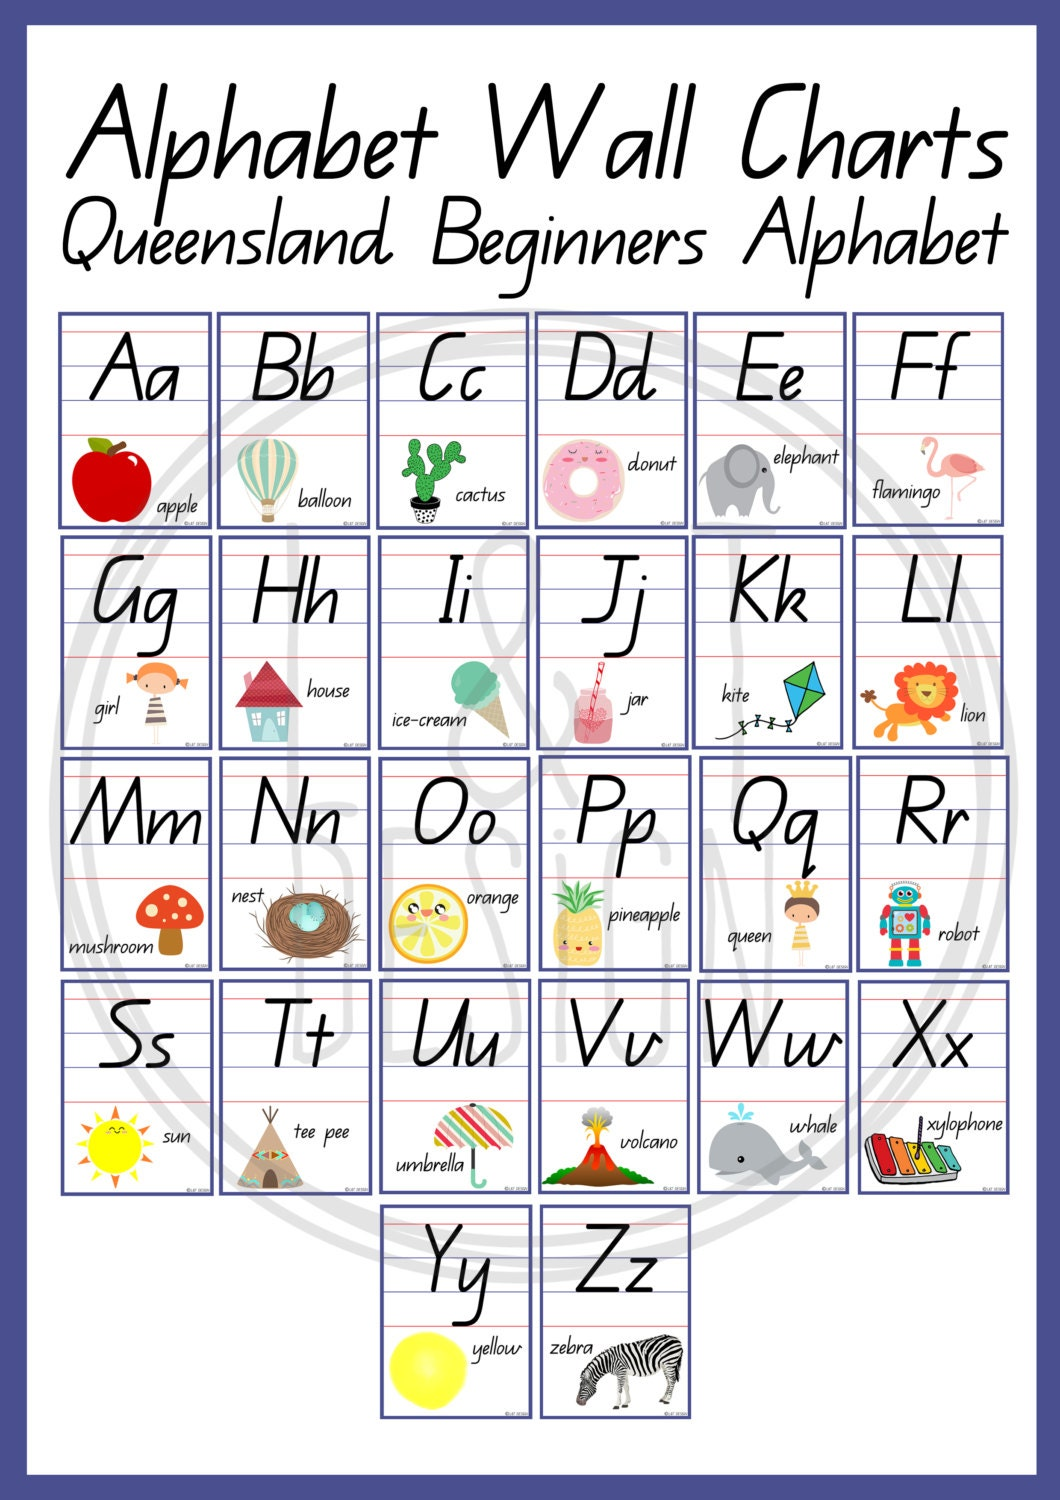 Modest image with alphabet chart printable